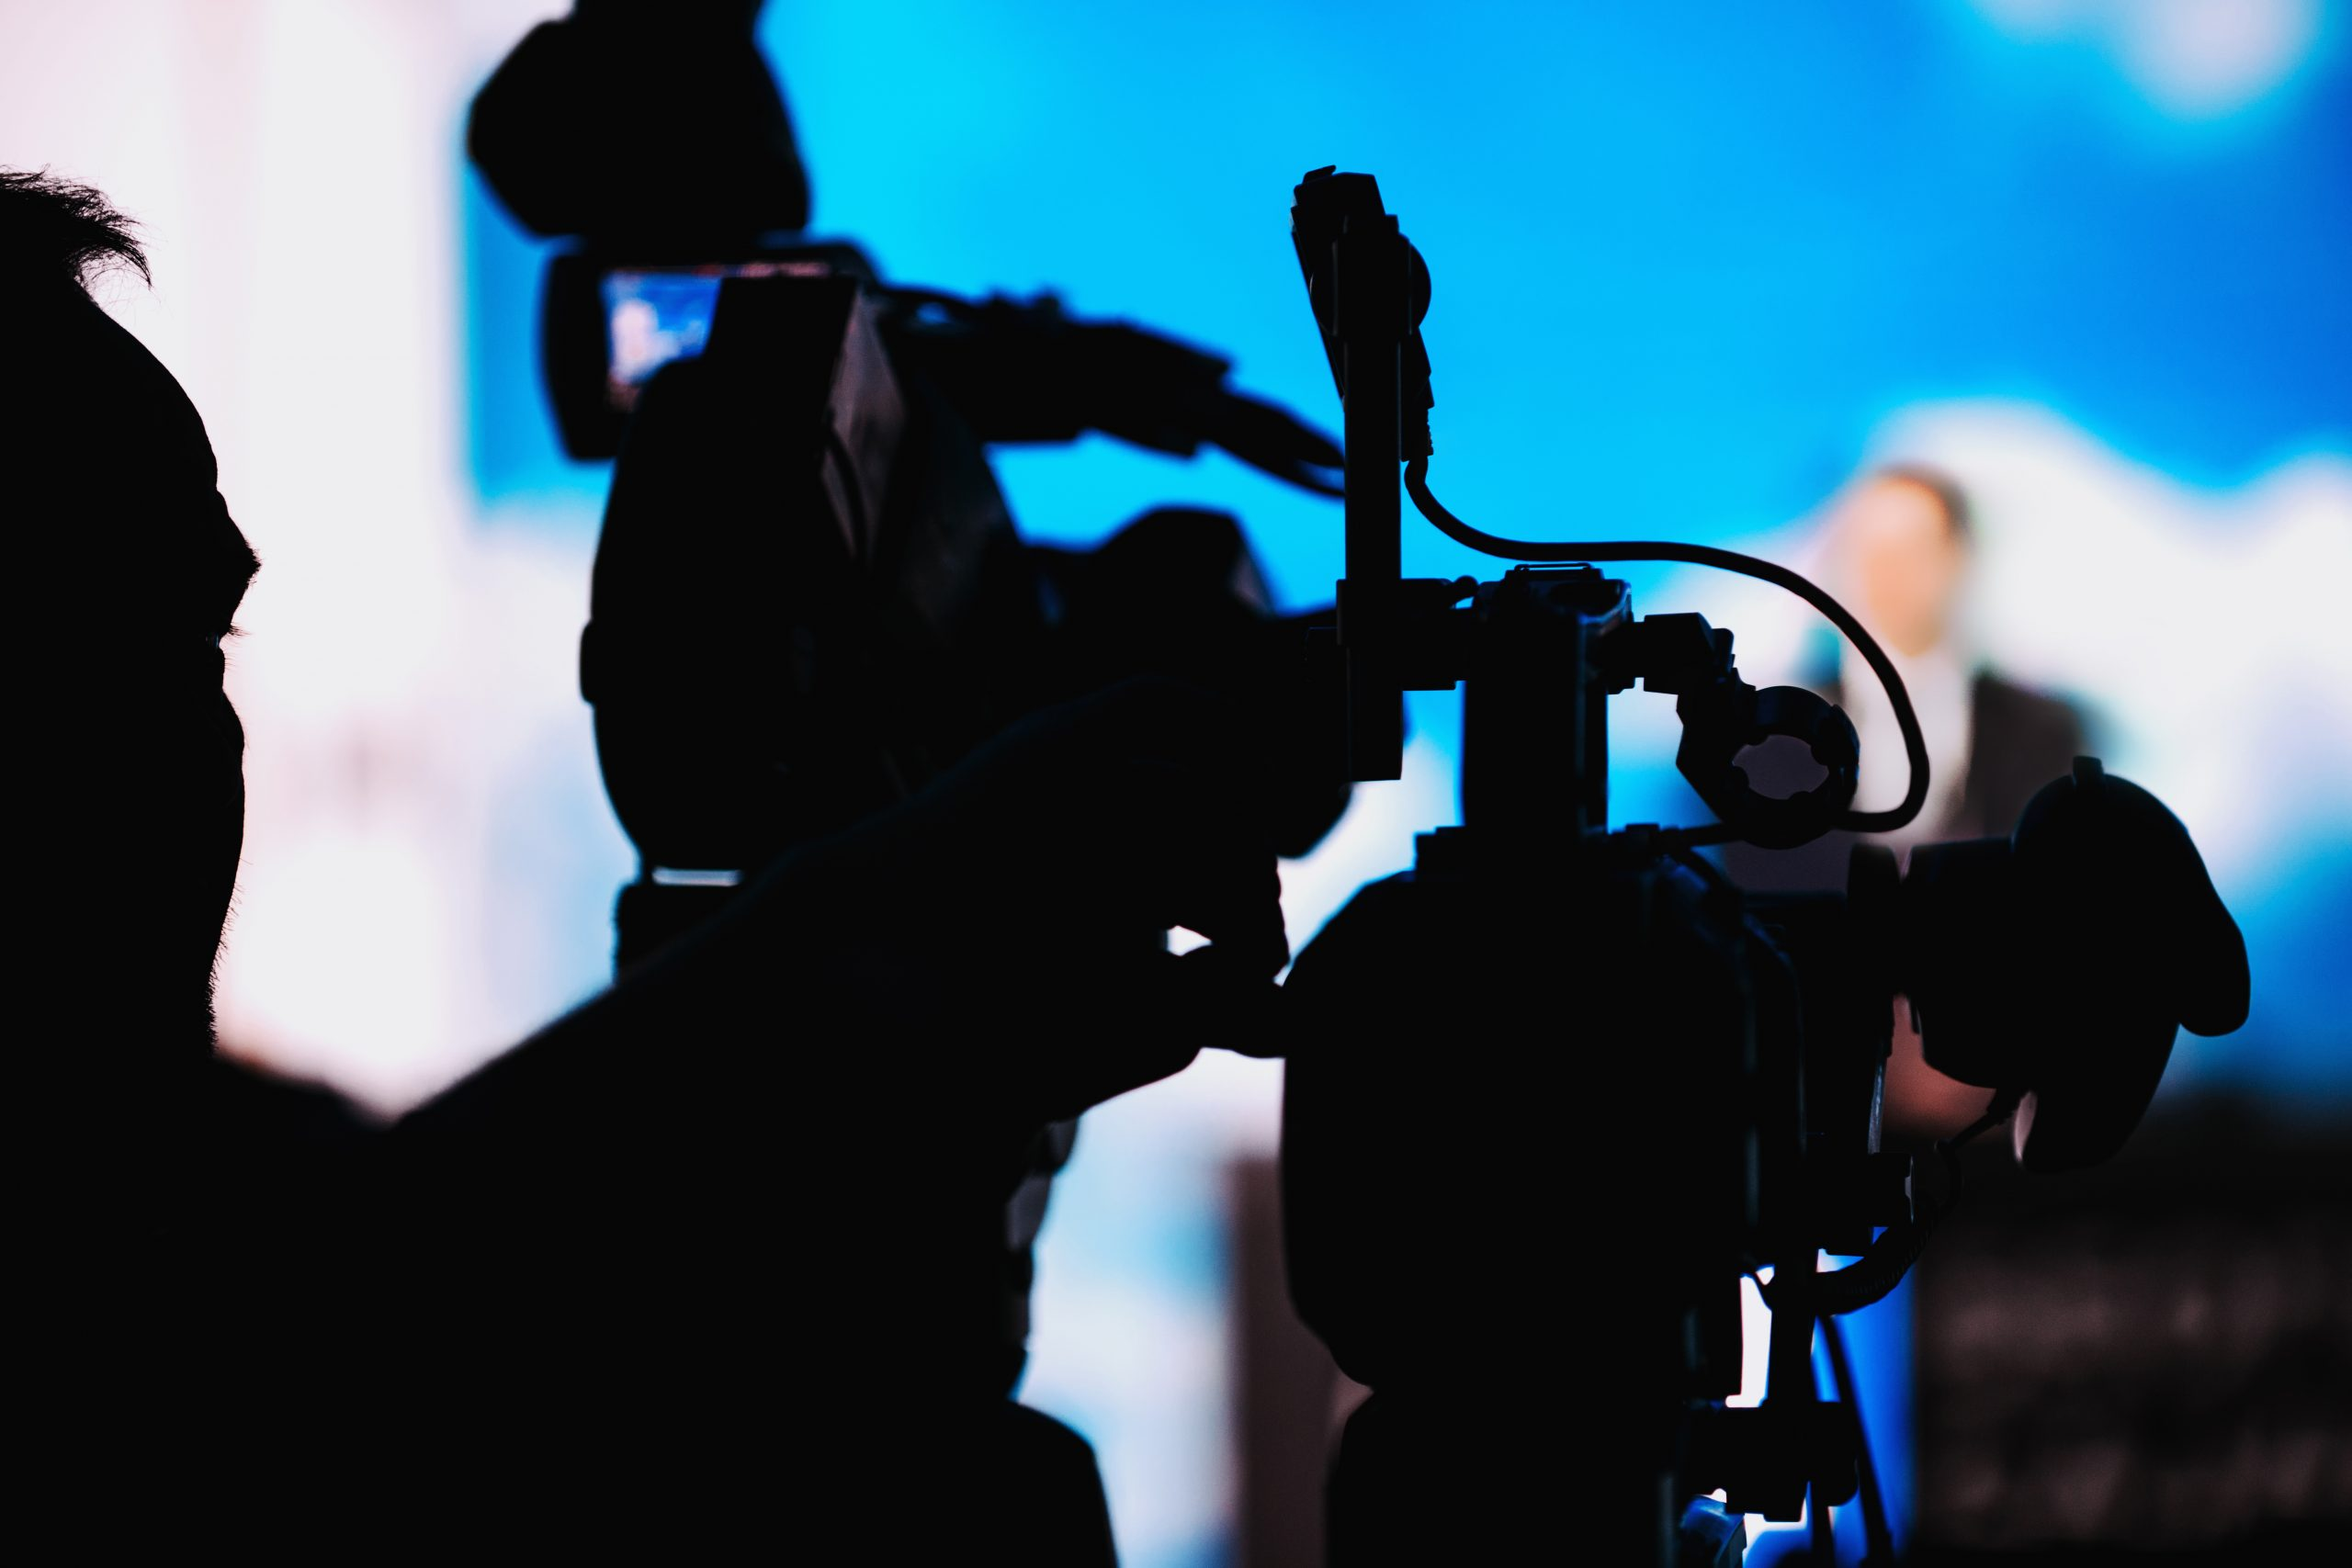 Silhouette of cameraman at media press conference recording presentation of a blurred speake, live streaming concept